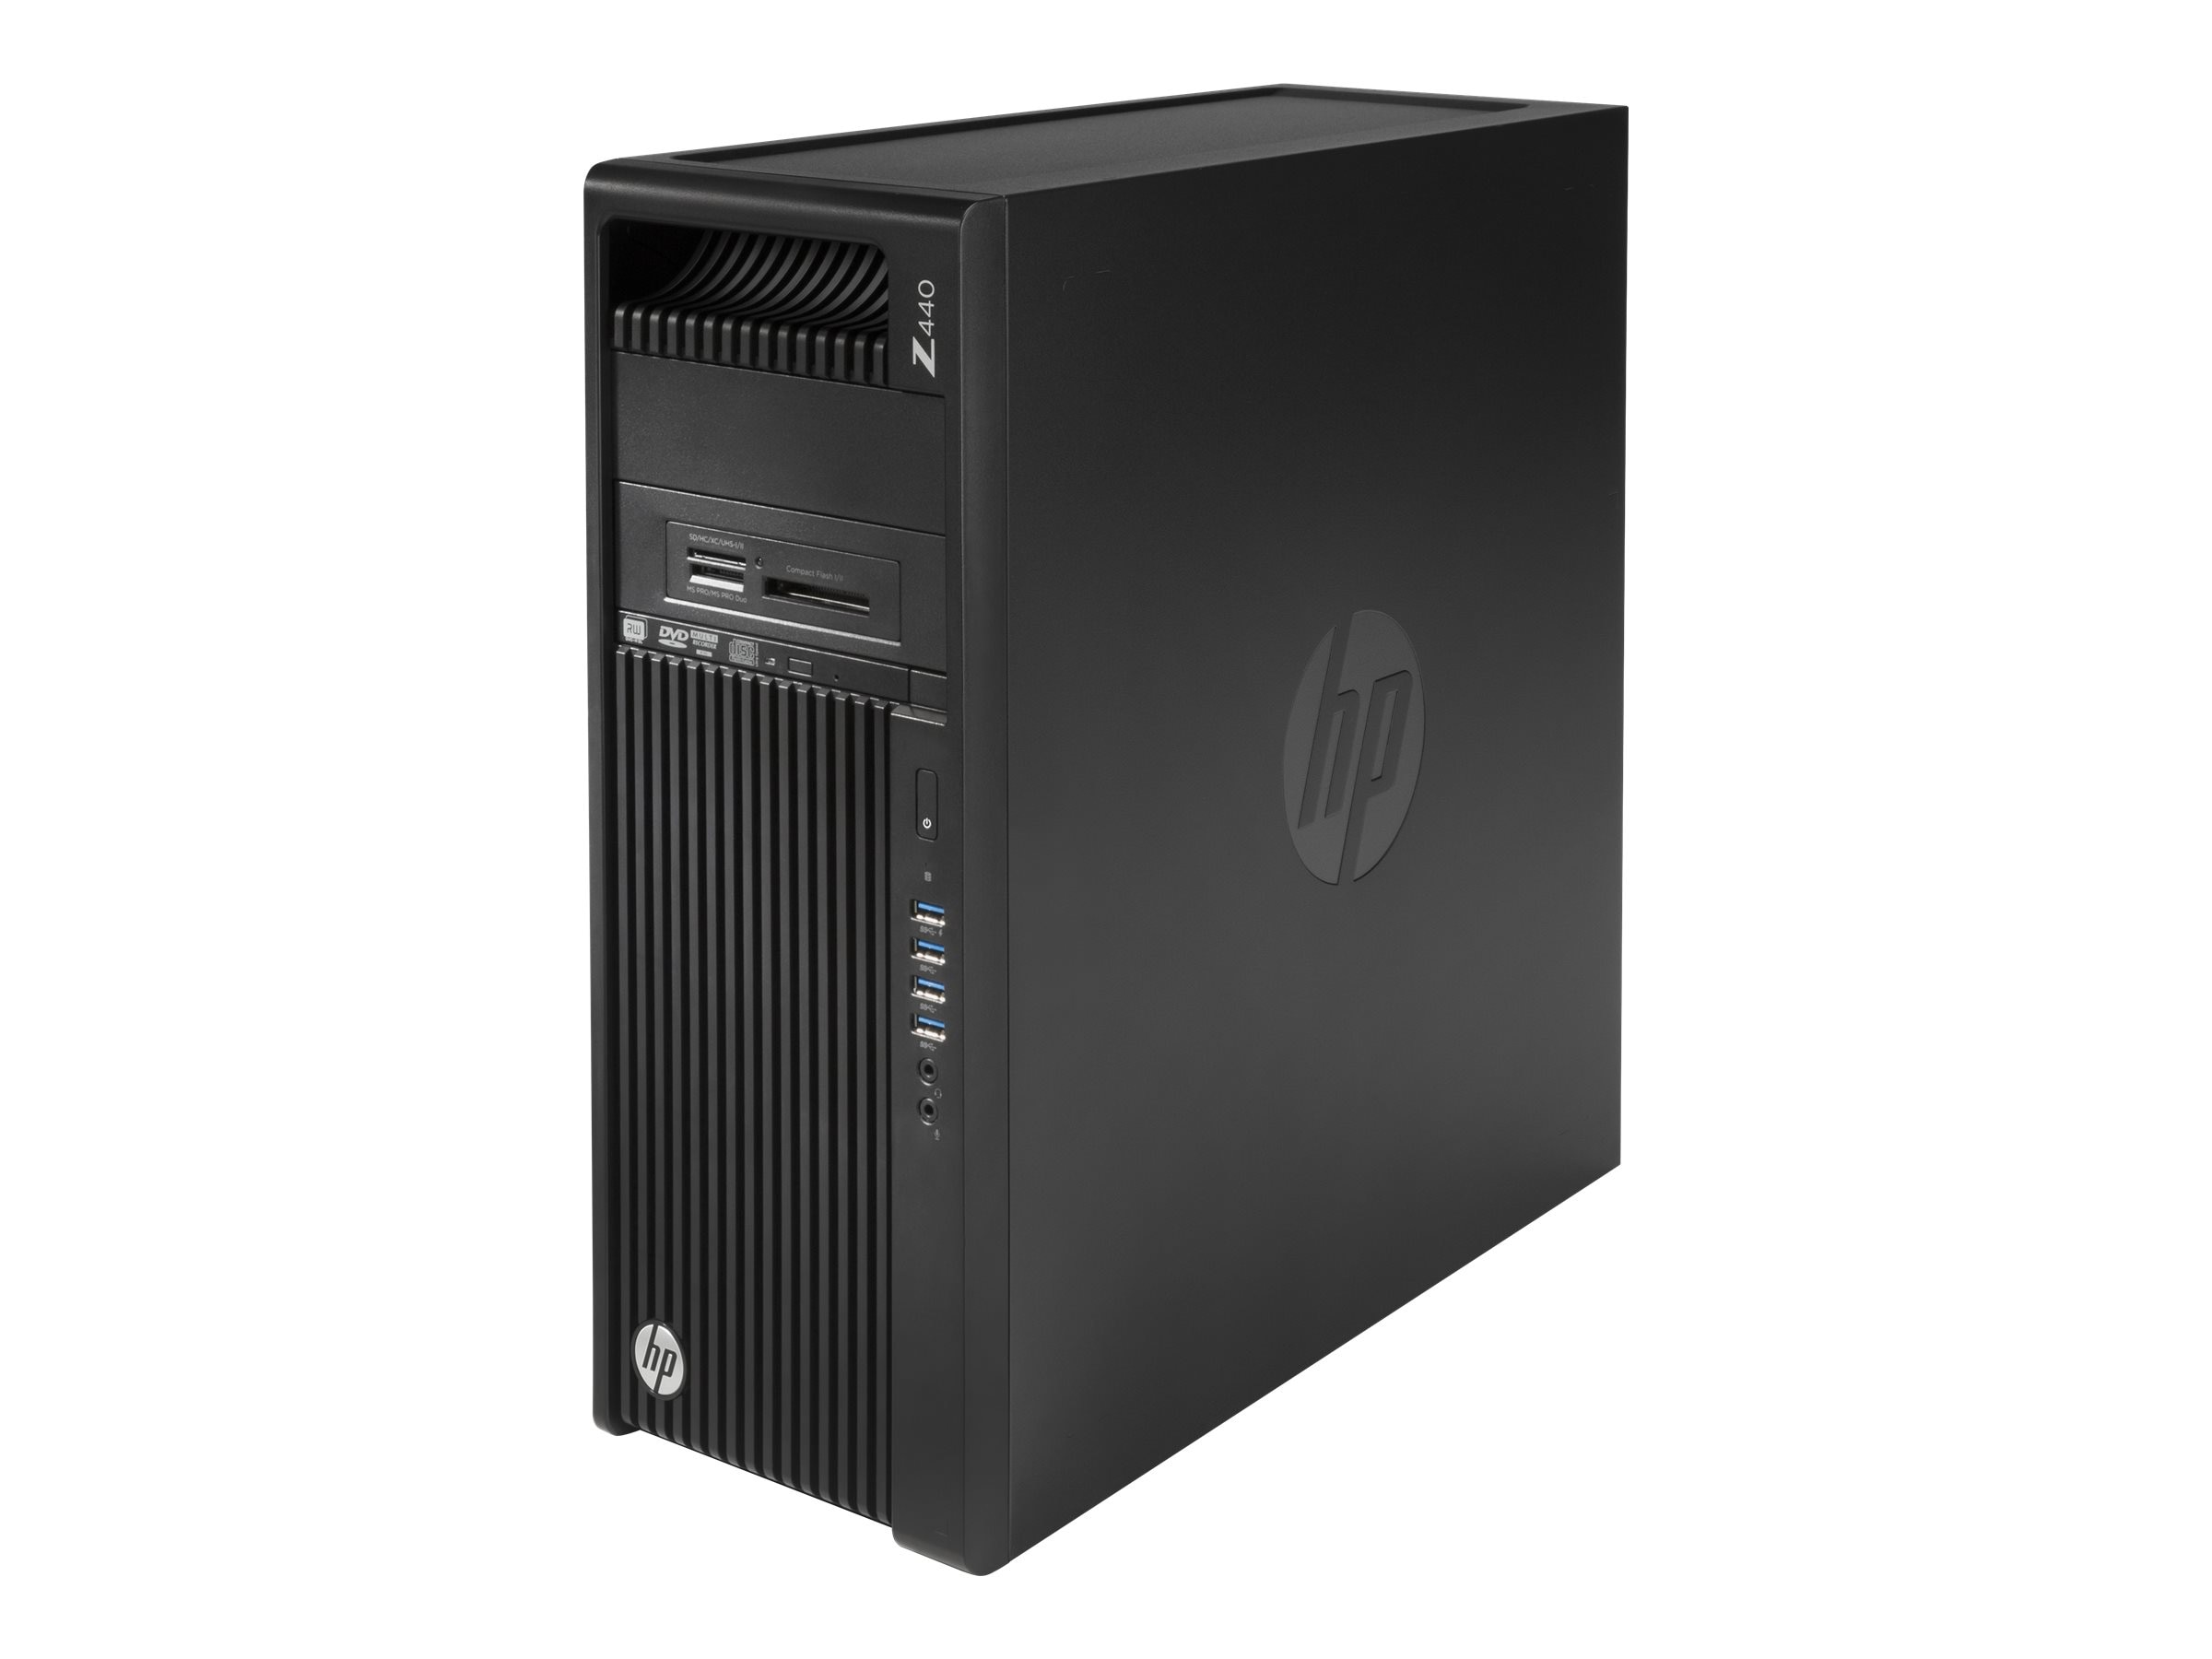 HP Smart Buy Z440 3.5GHz Xeon Microsoft Windows 7 Professional 64-bit Edition   Windows 8.1 Pro, F1M43UT#ABA, 17933309, Workstations